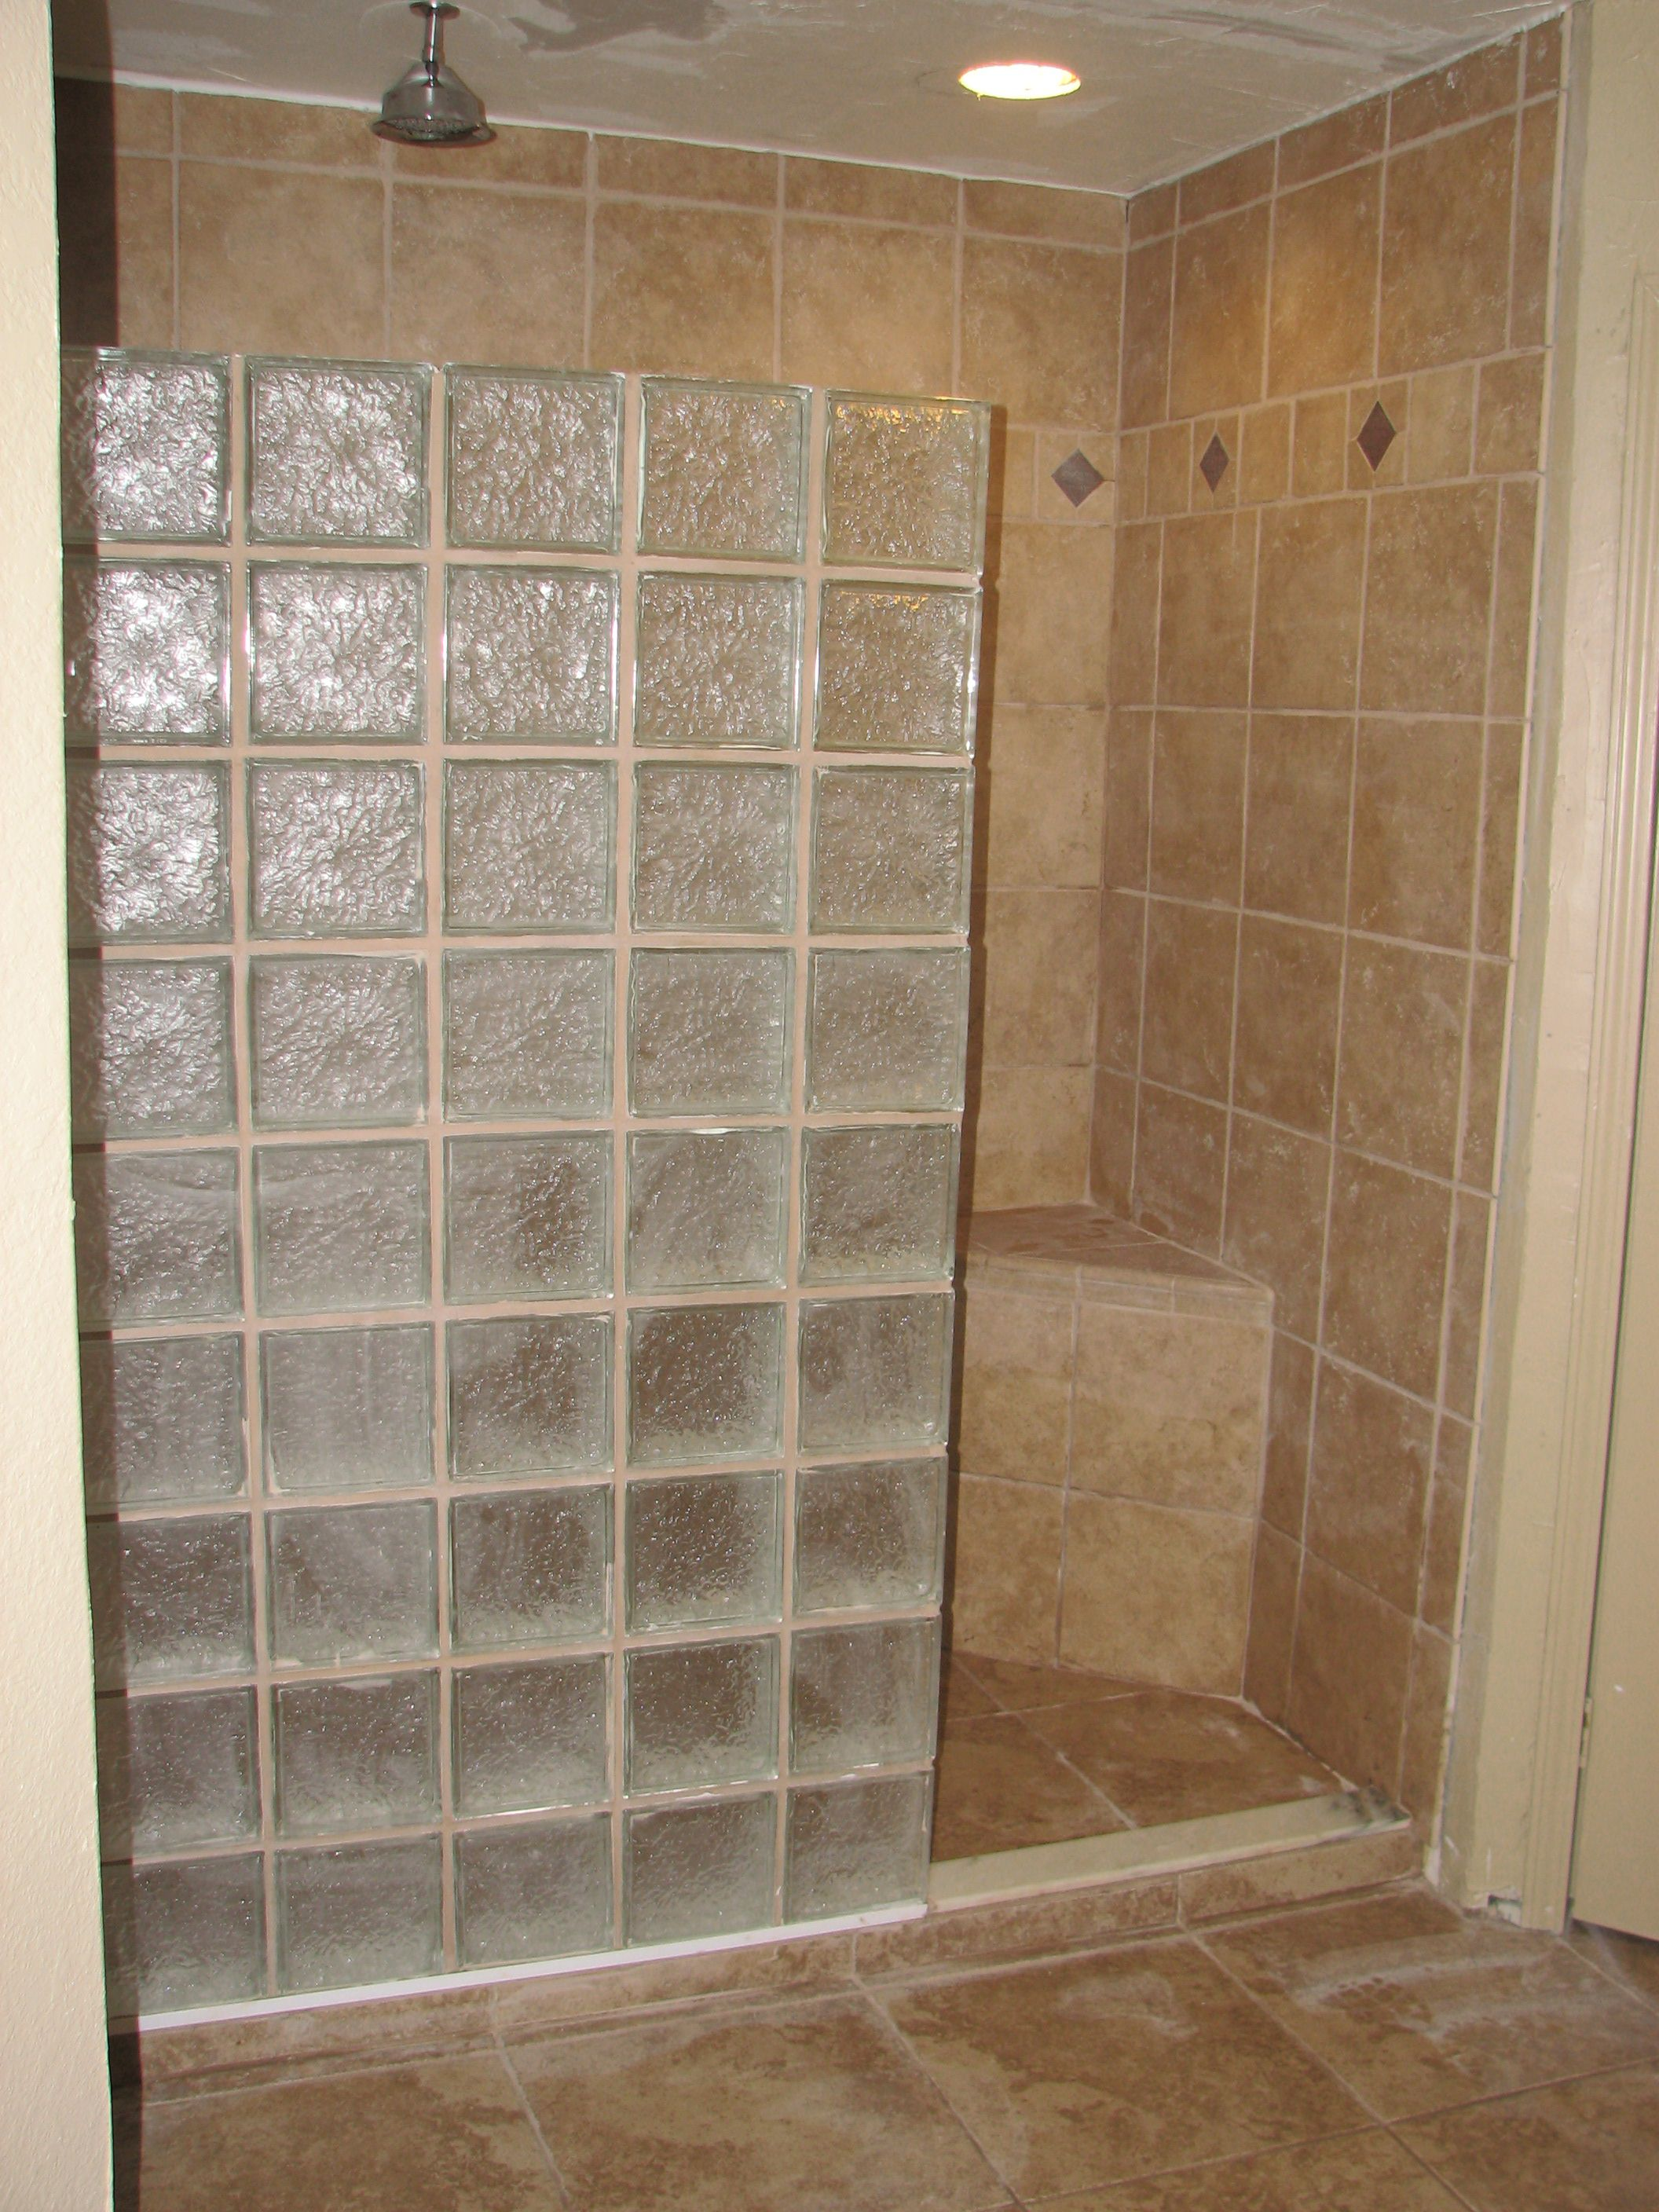 Compact Bathroom Designs Small Guest Bathroom Description From - Mobile home bathroom vanity for small bathroom ideas